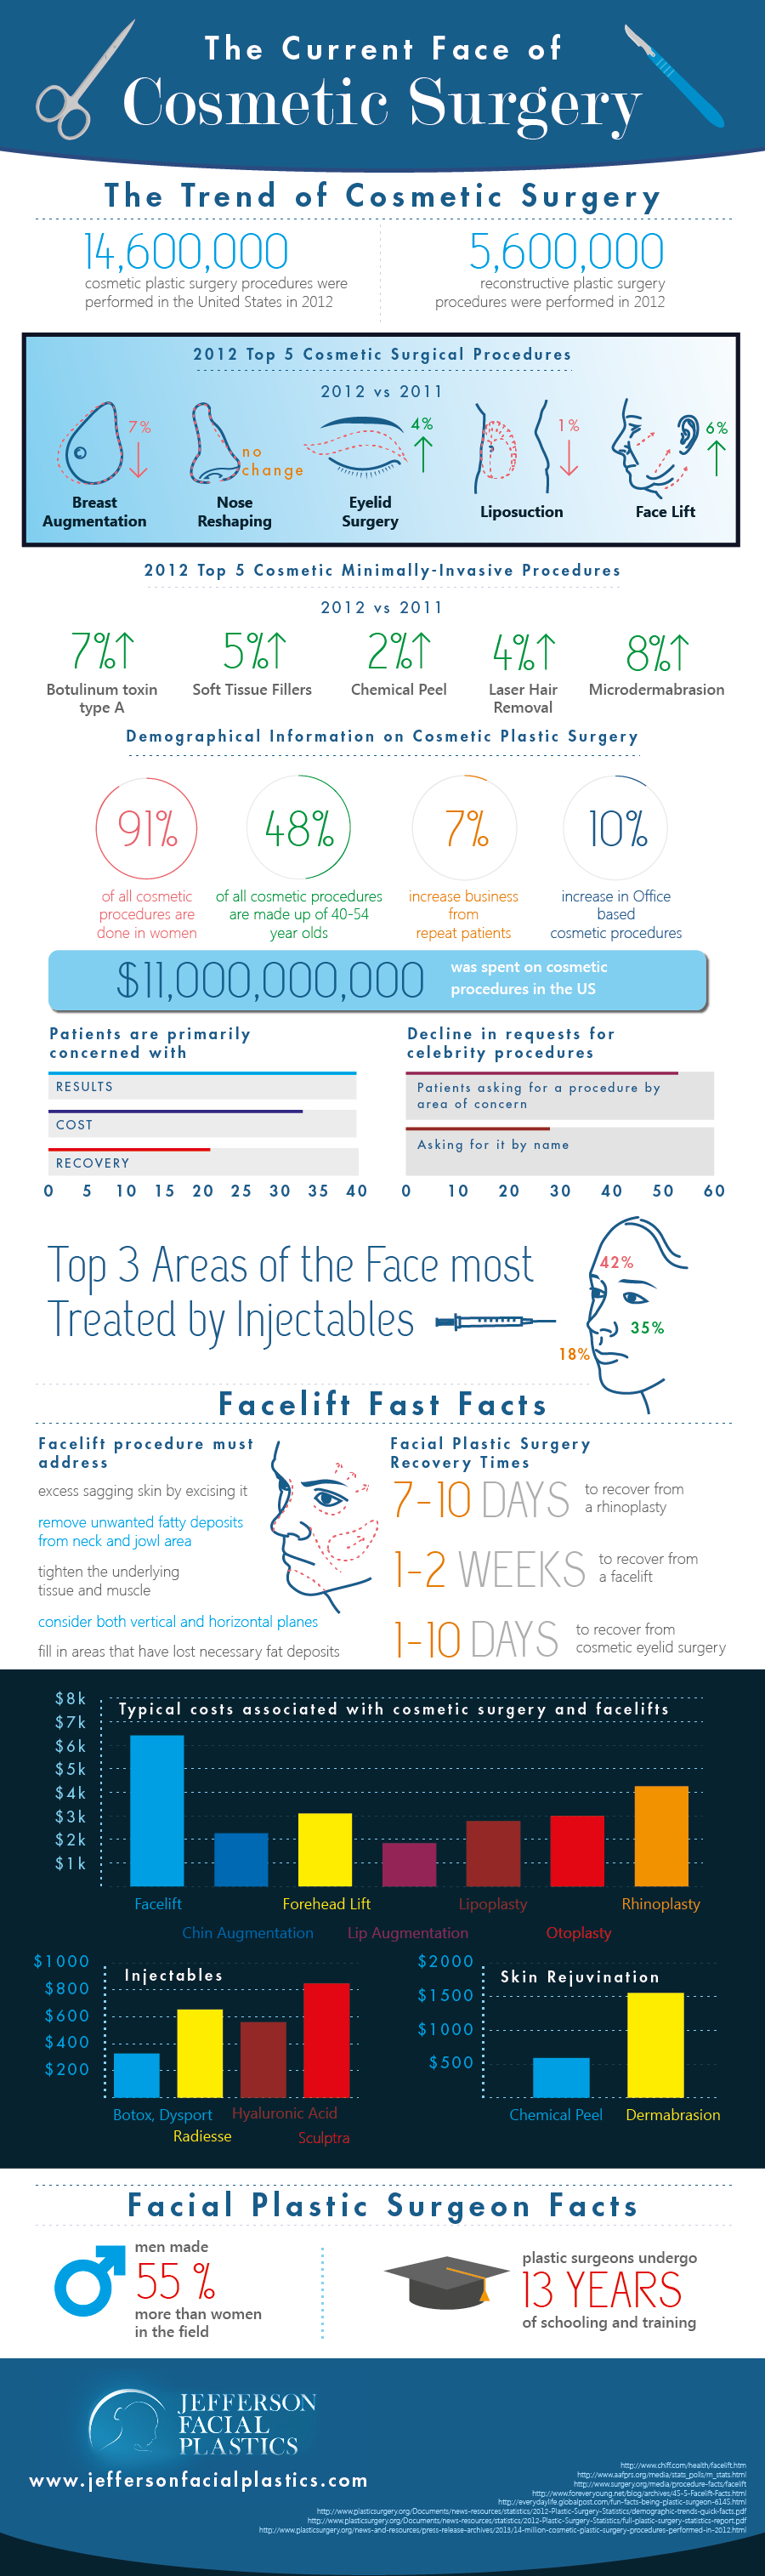 Cosmetic Surgery Industry Trends